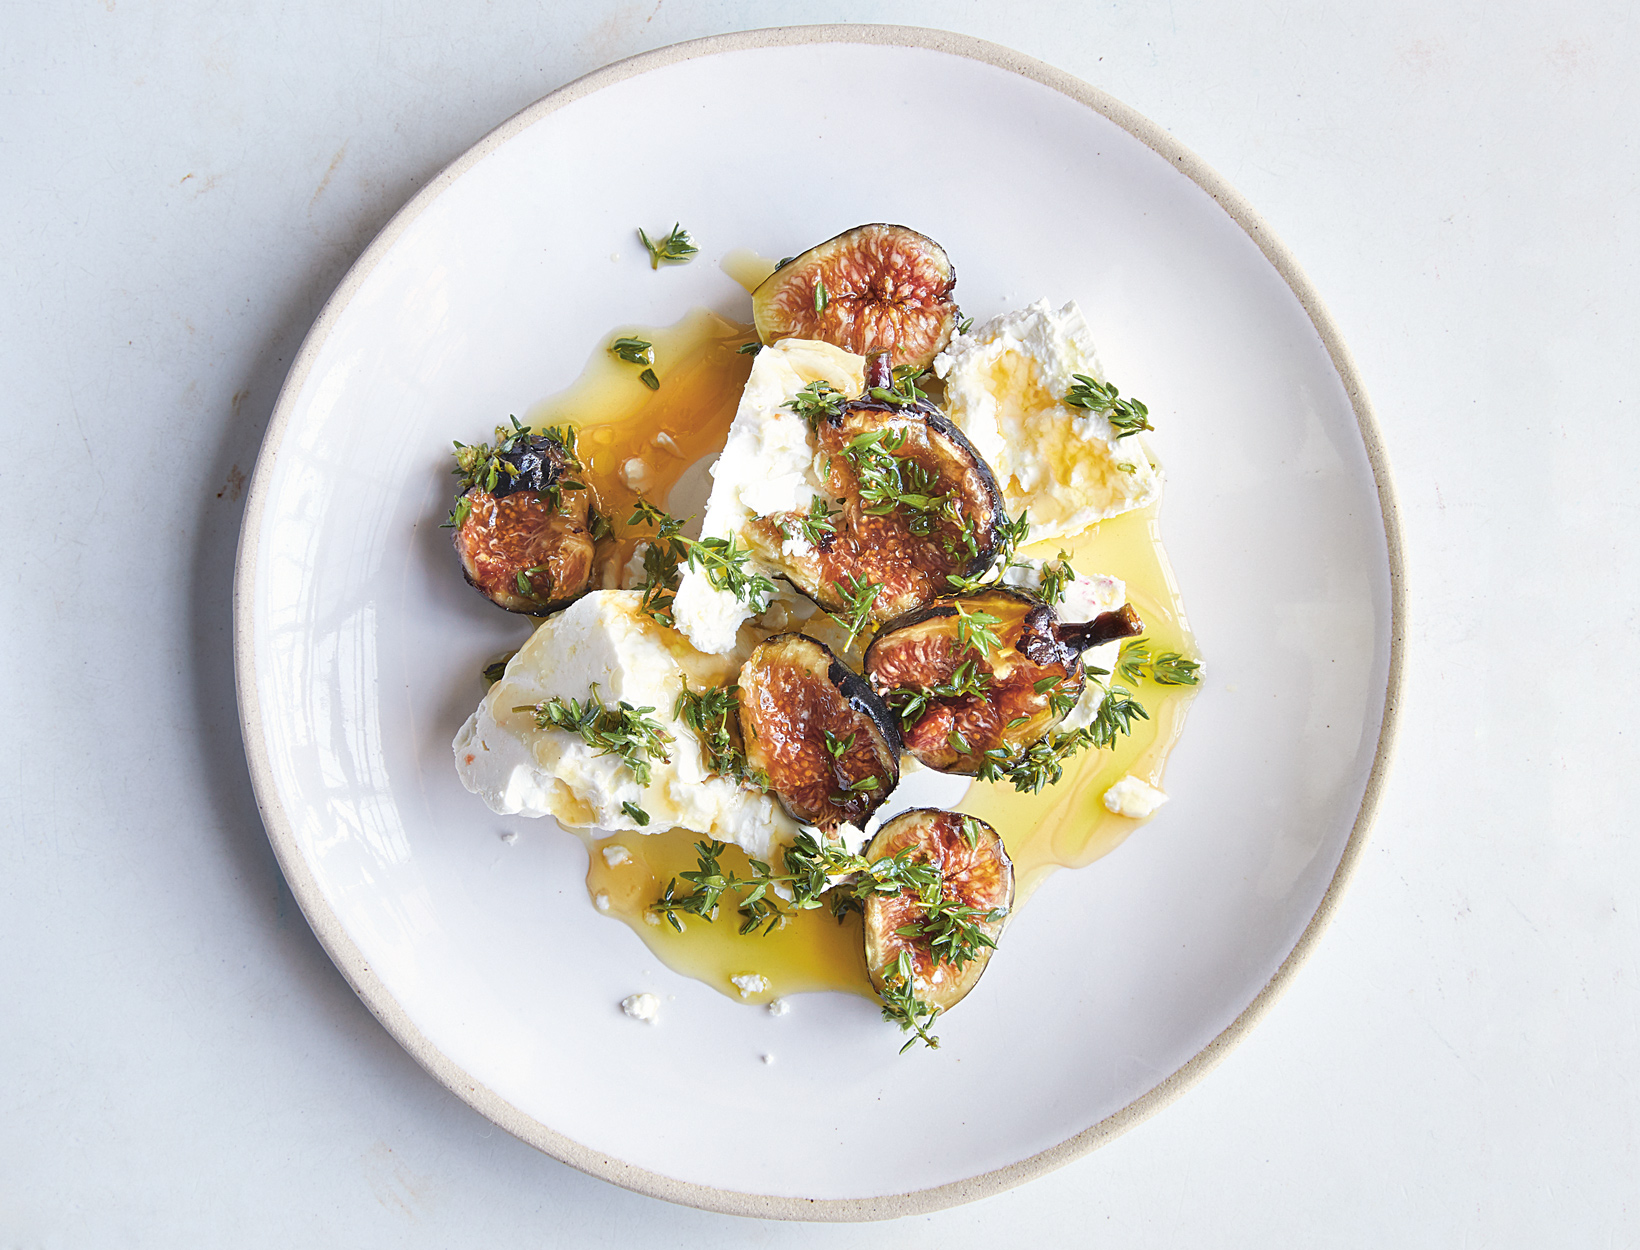 Feta, Figs, Thyme, and Honey